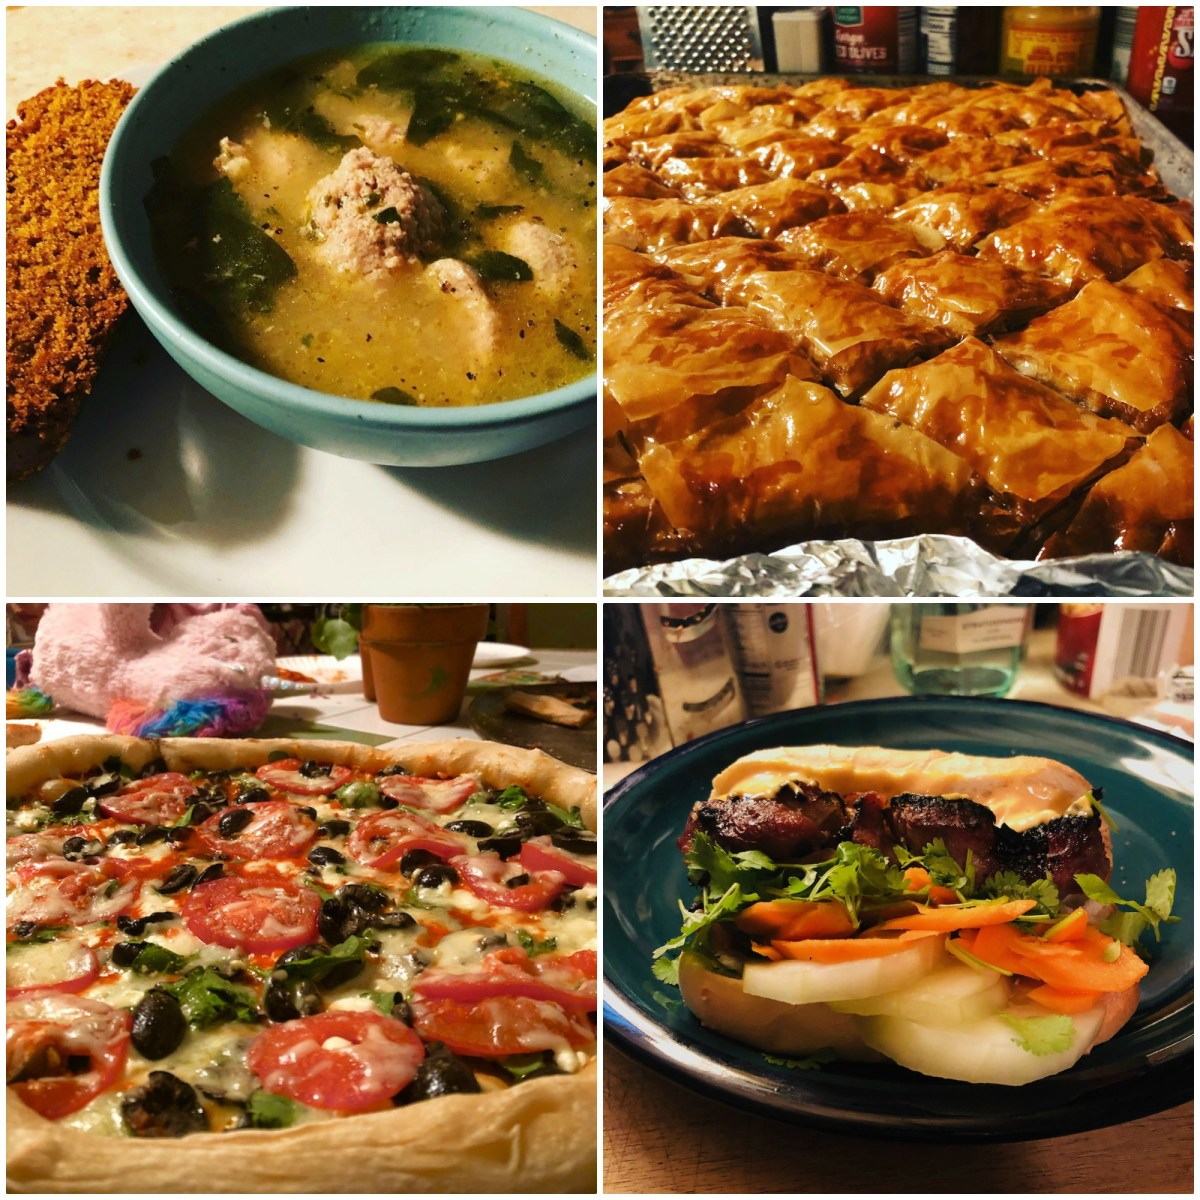 What's for supper? Vol. 193: Baklava! Shawarma! Rice pilaf! Banh mi! Italian wedding soup! Pumpkin bread! AND MORE!